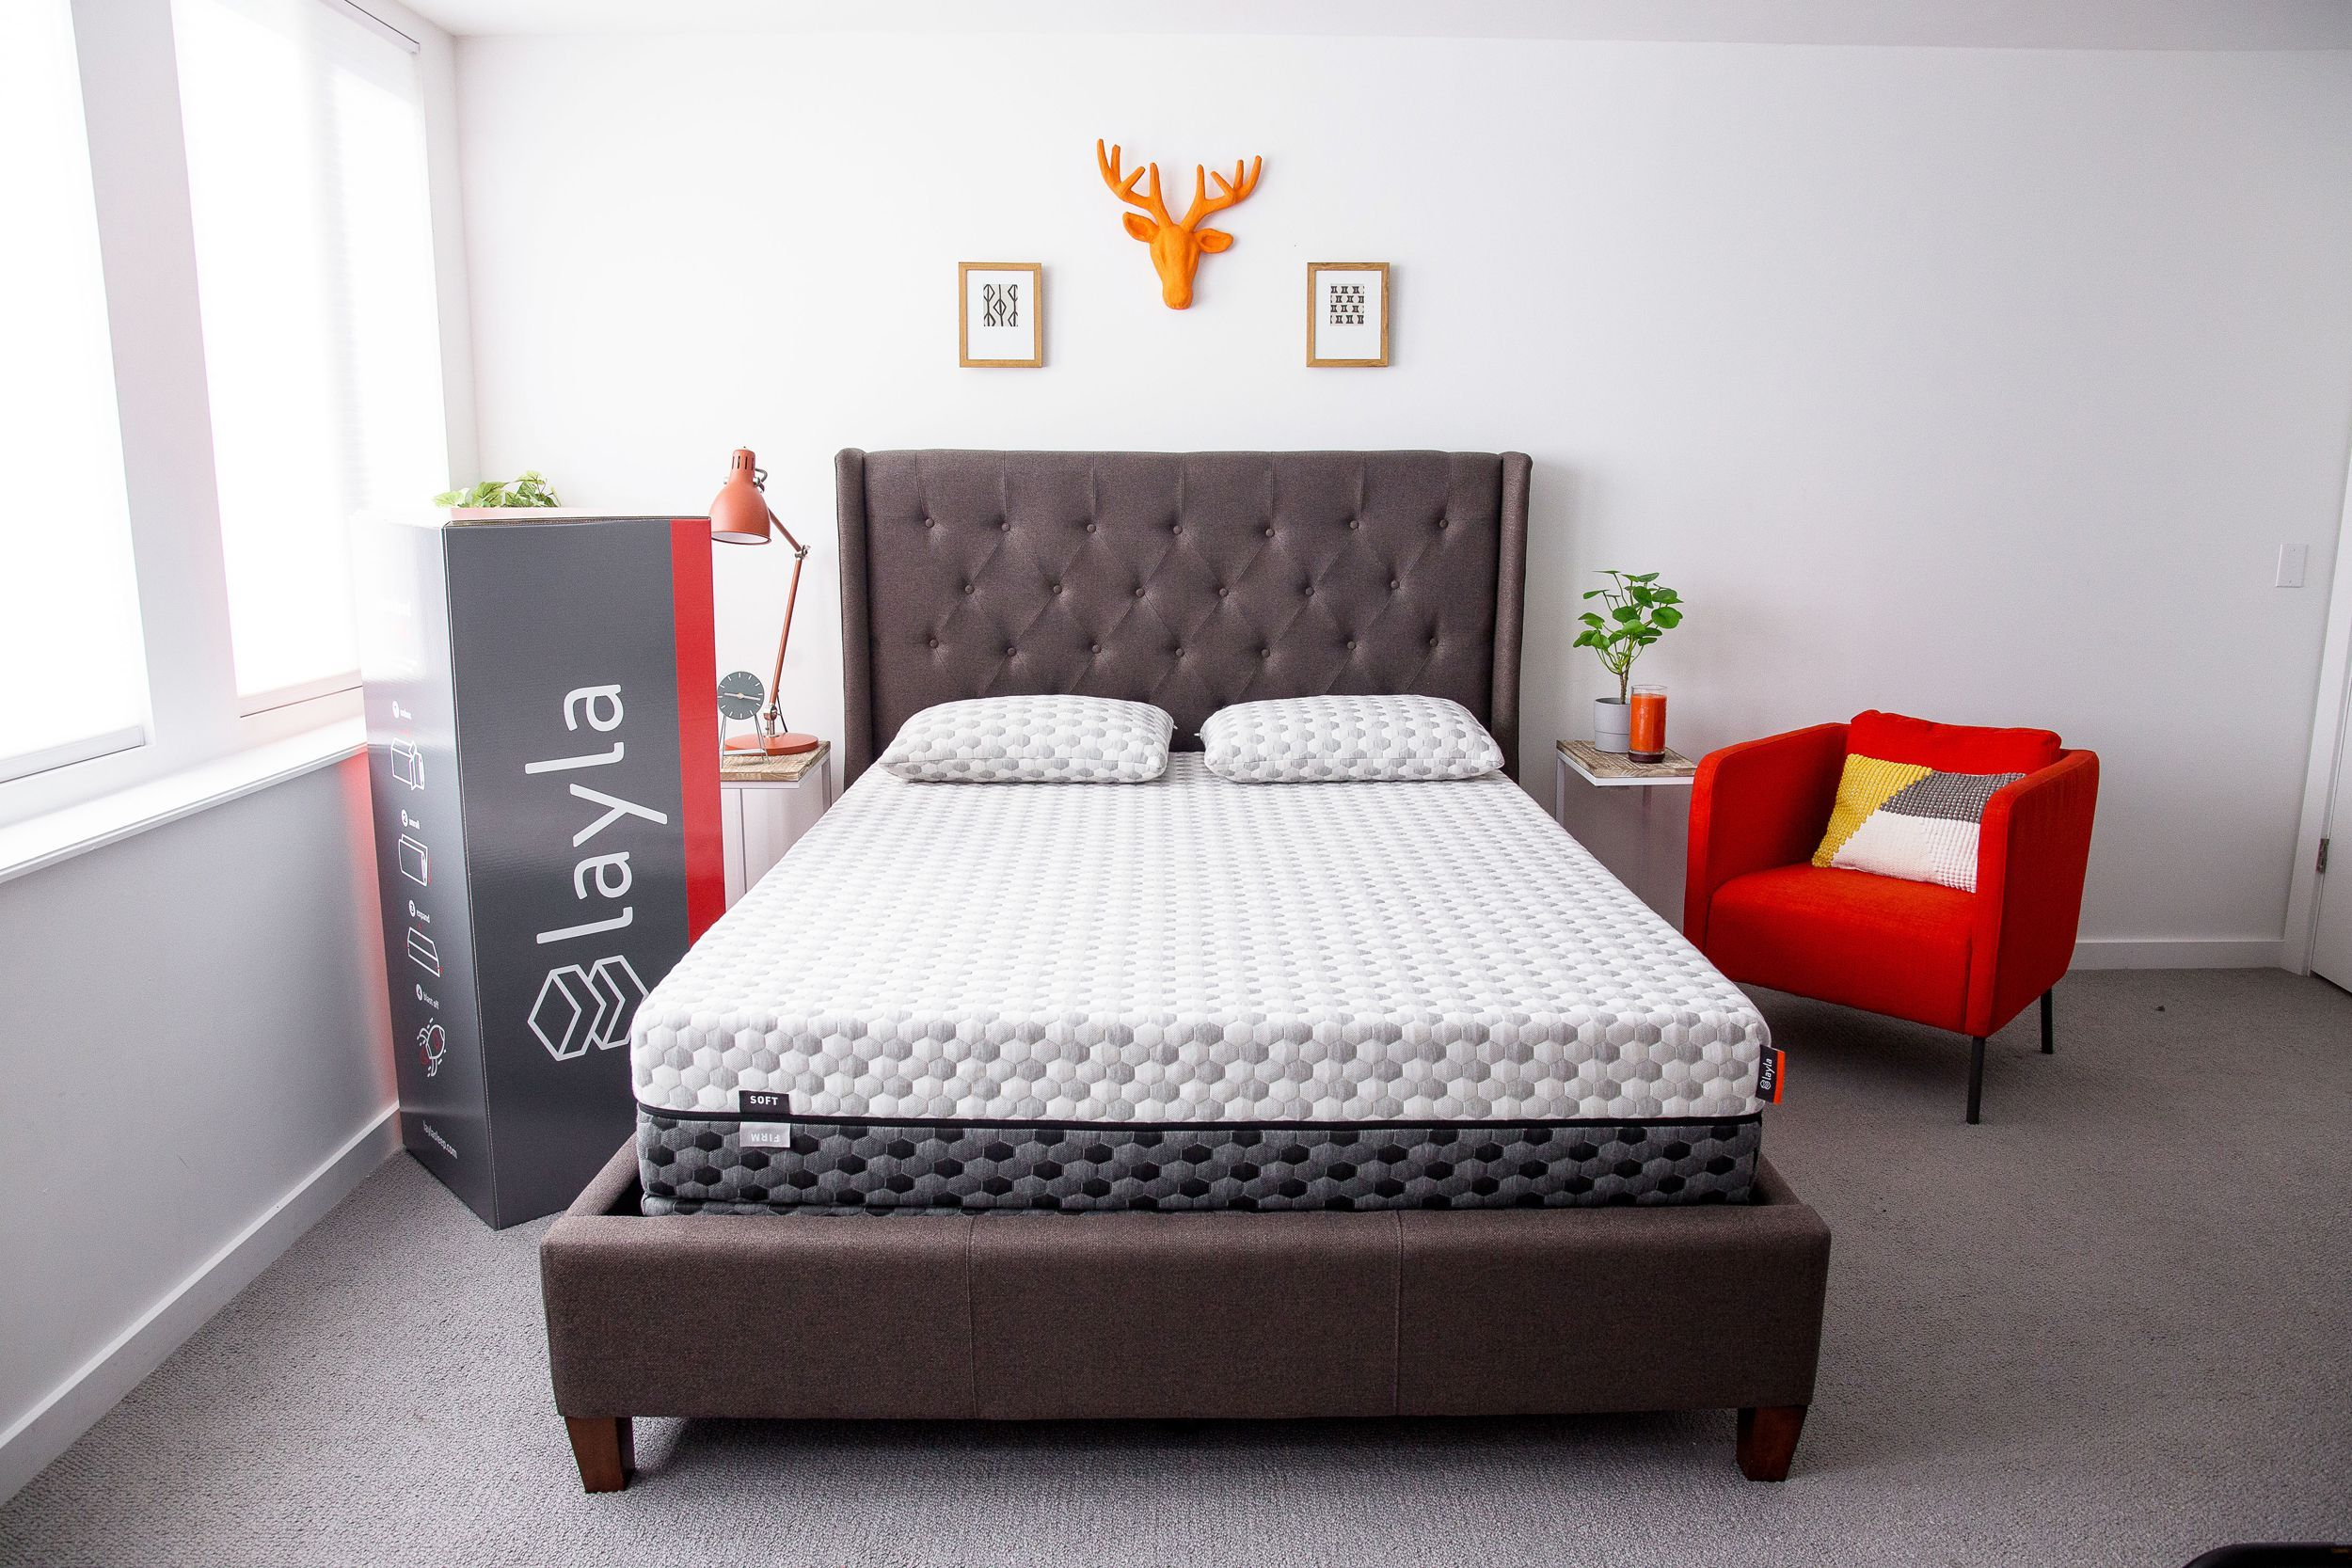 How To Choose A Mattress The Ultimate Mattress Buying Guide